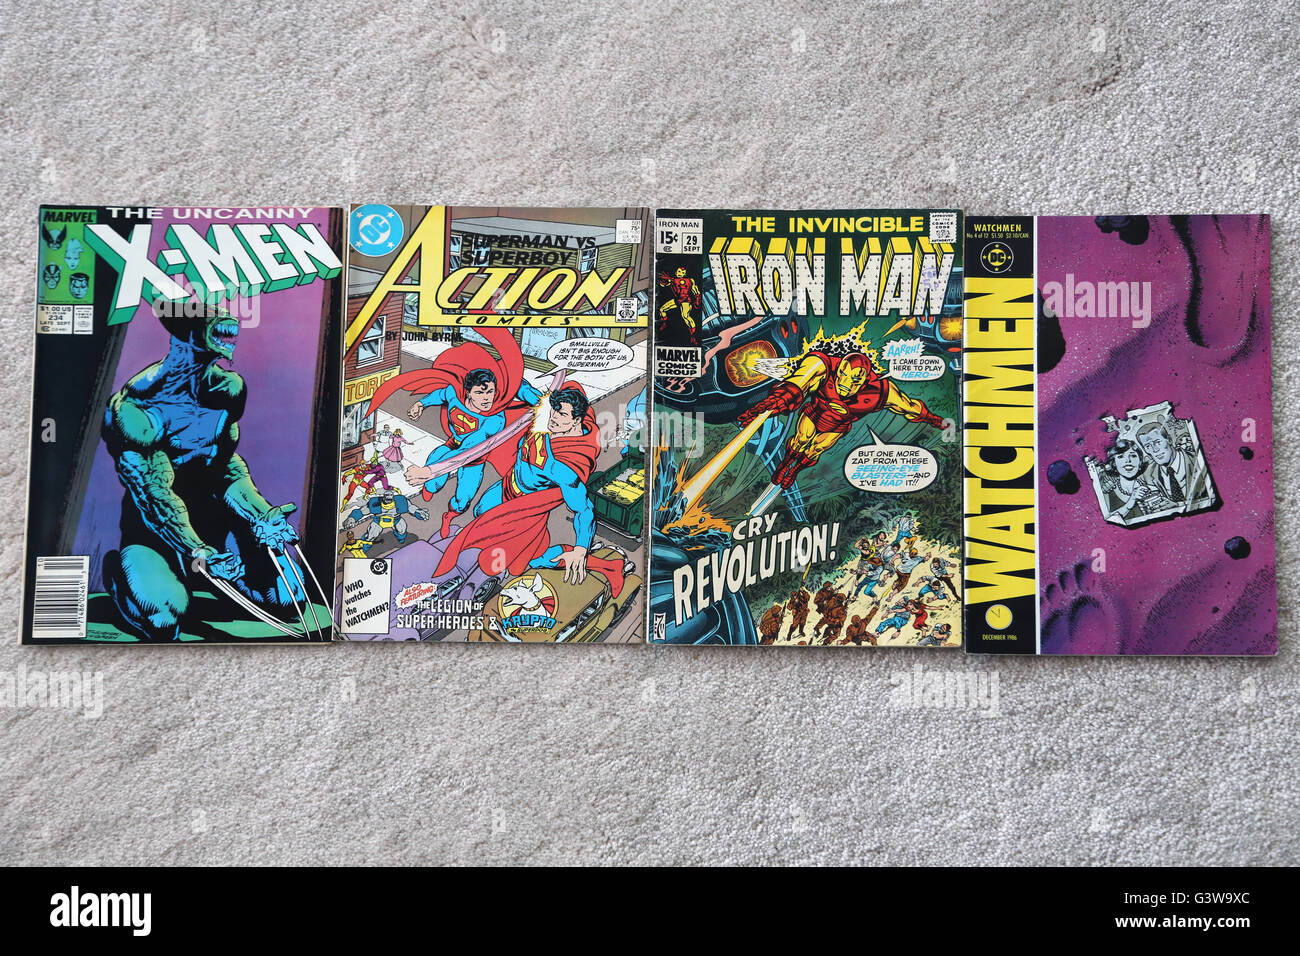 Collection Of Vintage Marvel And DC Comic Books The Uncanny X-Men, Action Comics Superman, The Invincible Iron Man Stock Photo